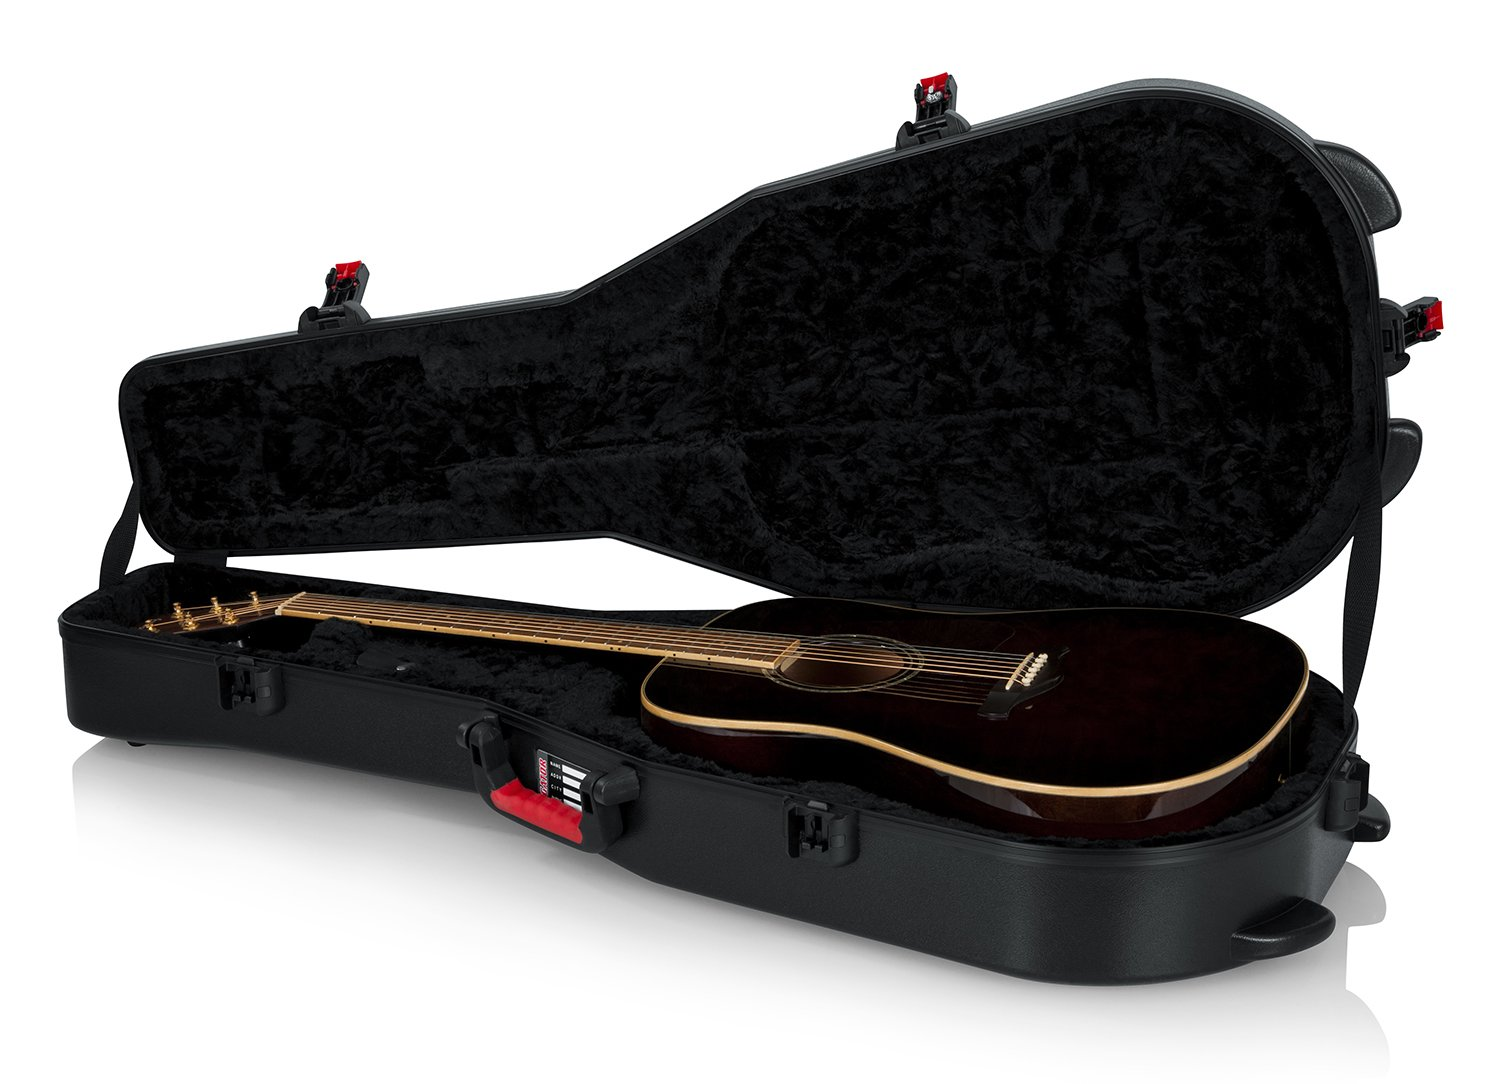 Gator Cases Molded Flight Case for Acoustic Dreadnought Guitars with TSA Approved Locking Latch; (GTSA-GTRDREAD)